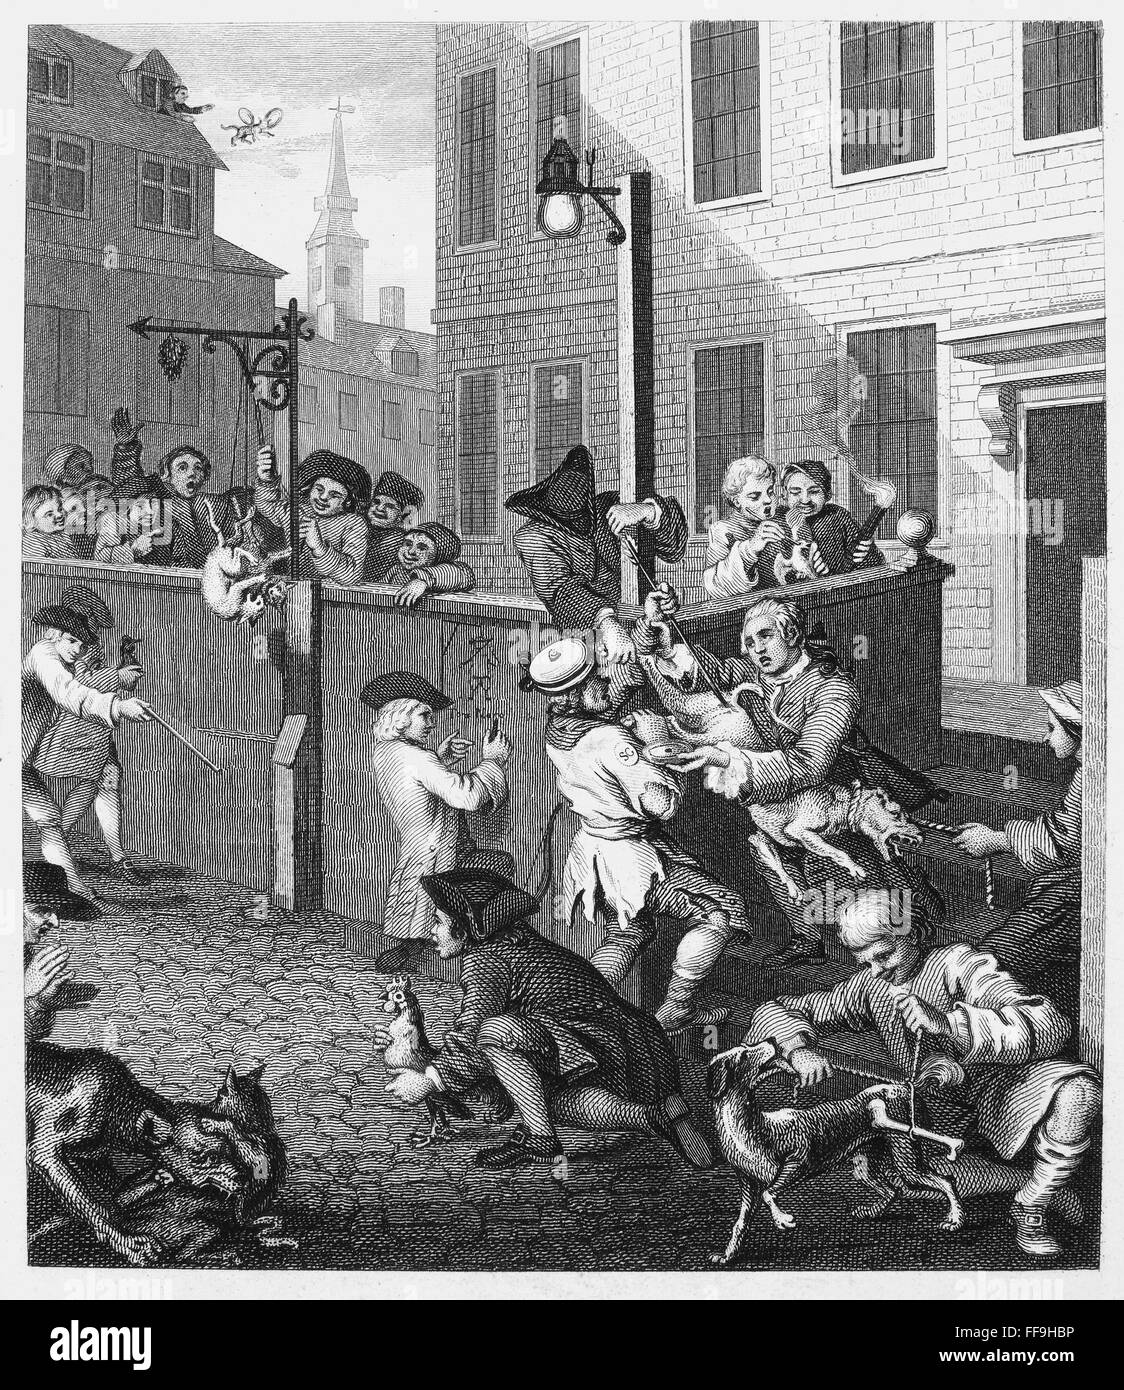 HOGARTH: CRUELTY, 1751. /n'The Four Stages of Cruelty. First Stage of  Cruelty.' Engraving after the etching, 1751, by William Hogarth.